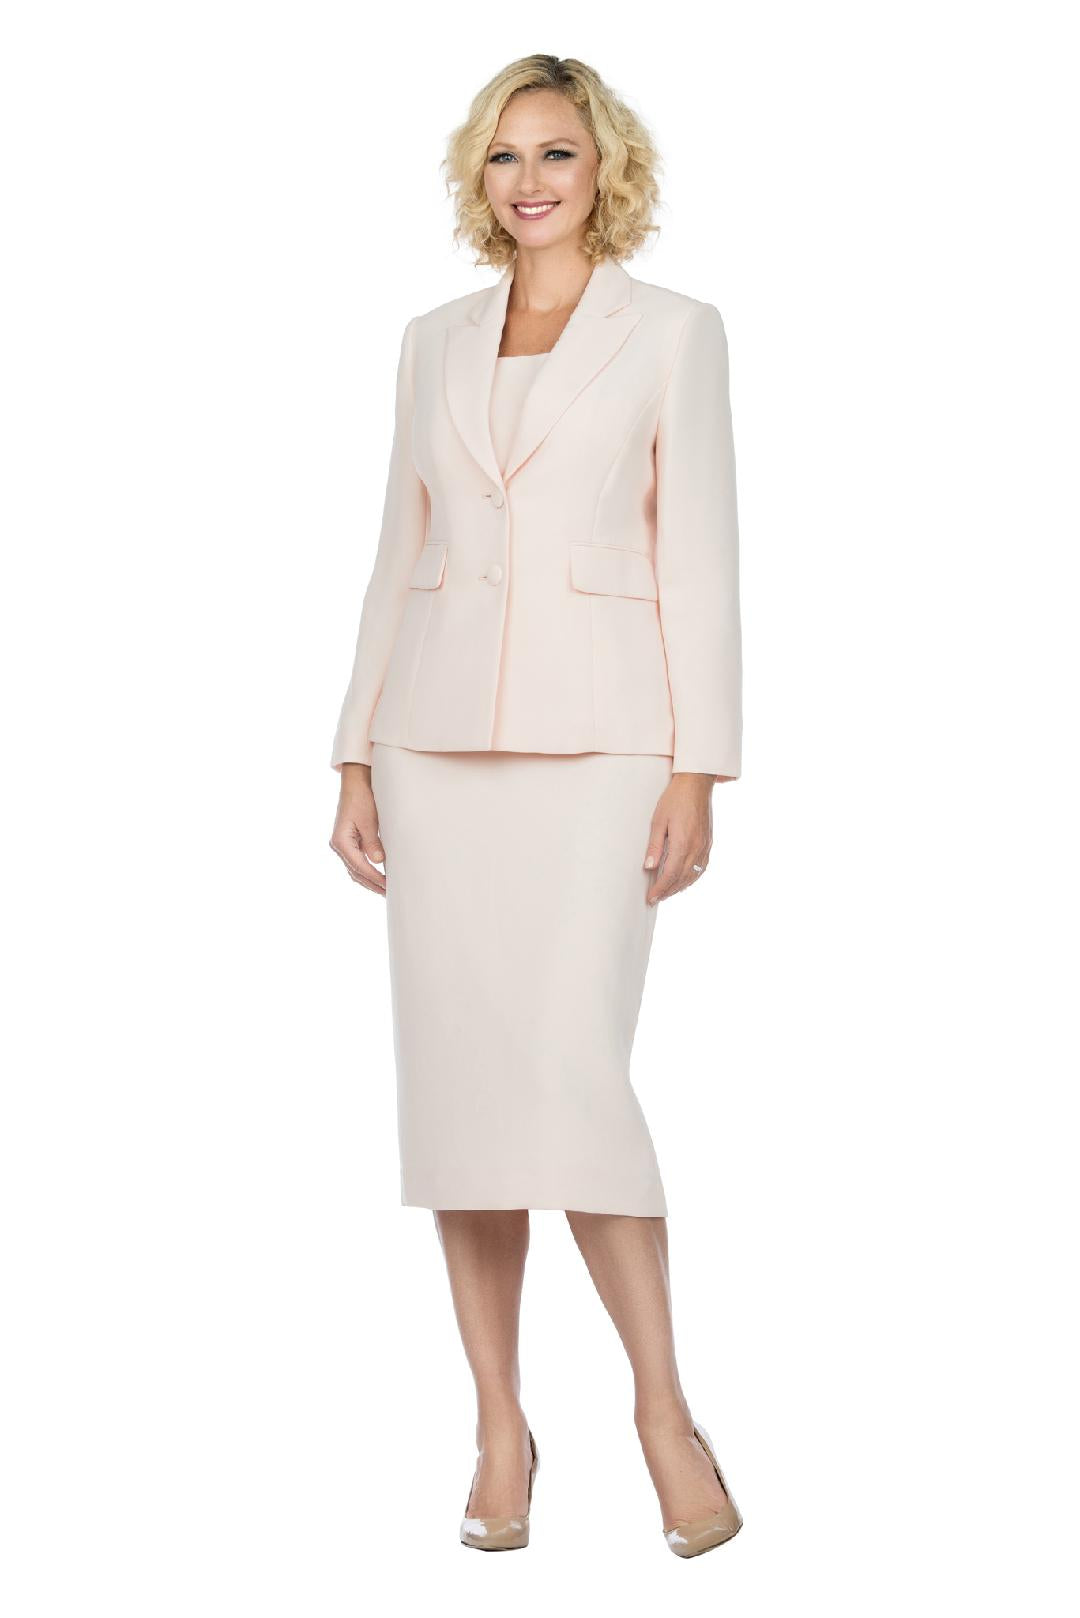 Giovanna Usher Suit S0710-Pale Pink - Church Suits For Less